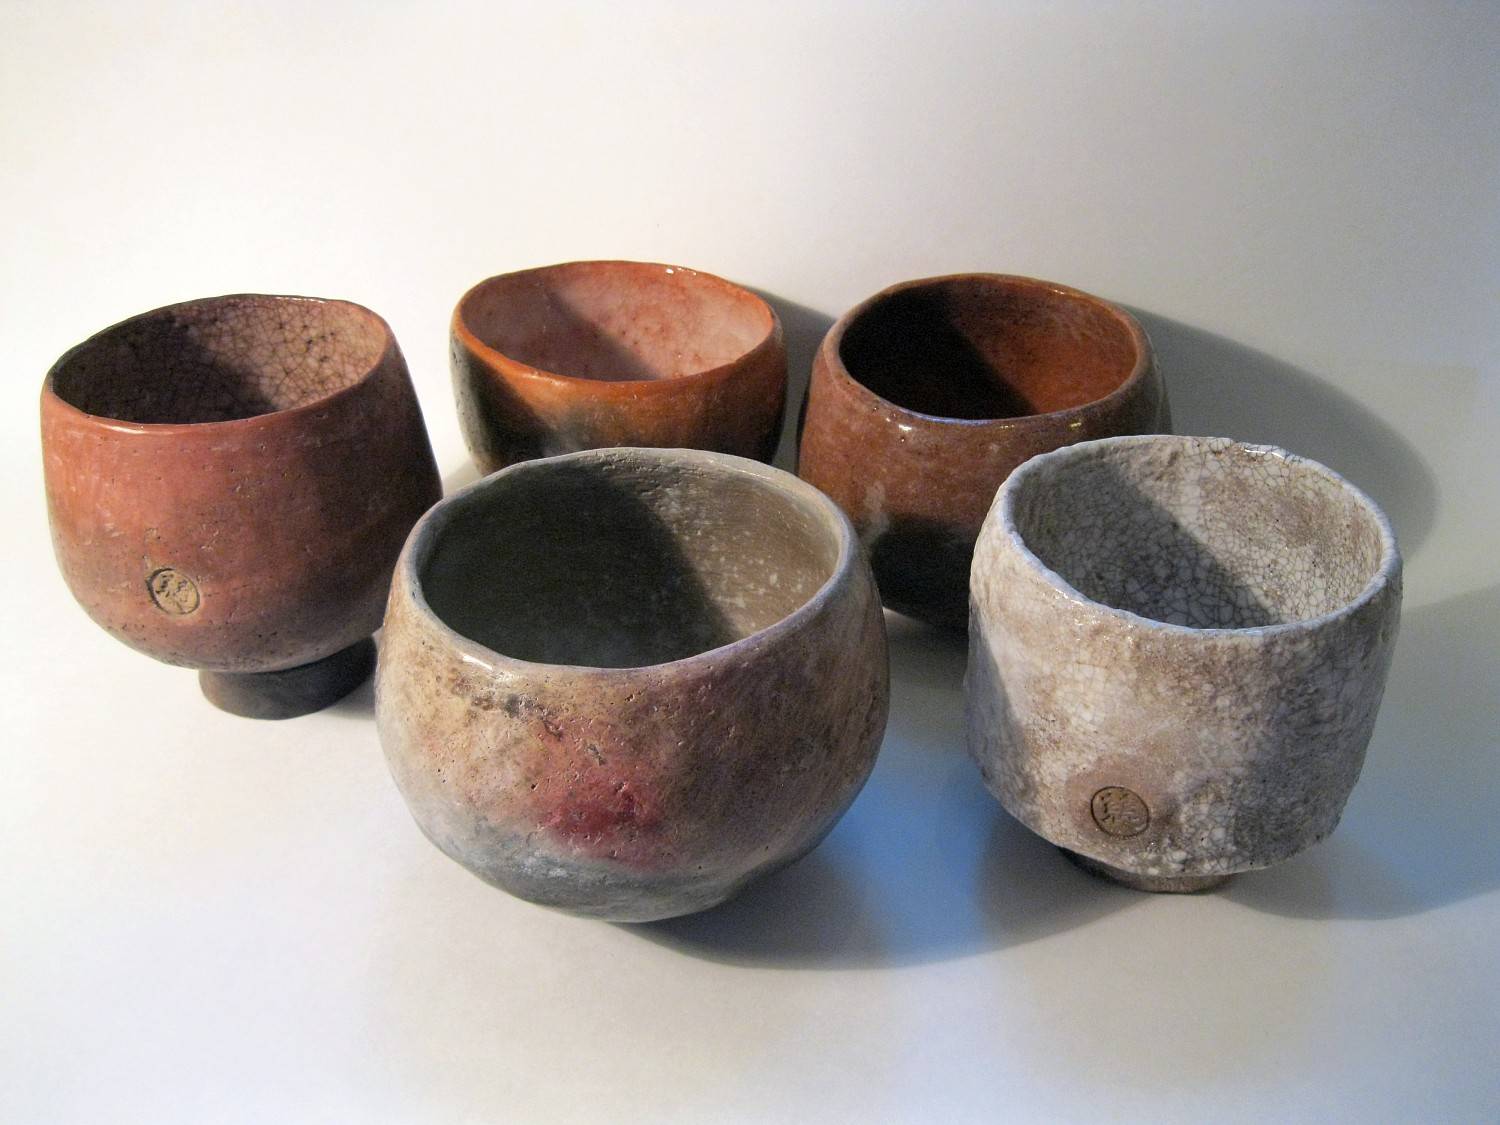 Japanese influenced raku tea bowls